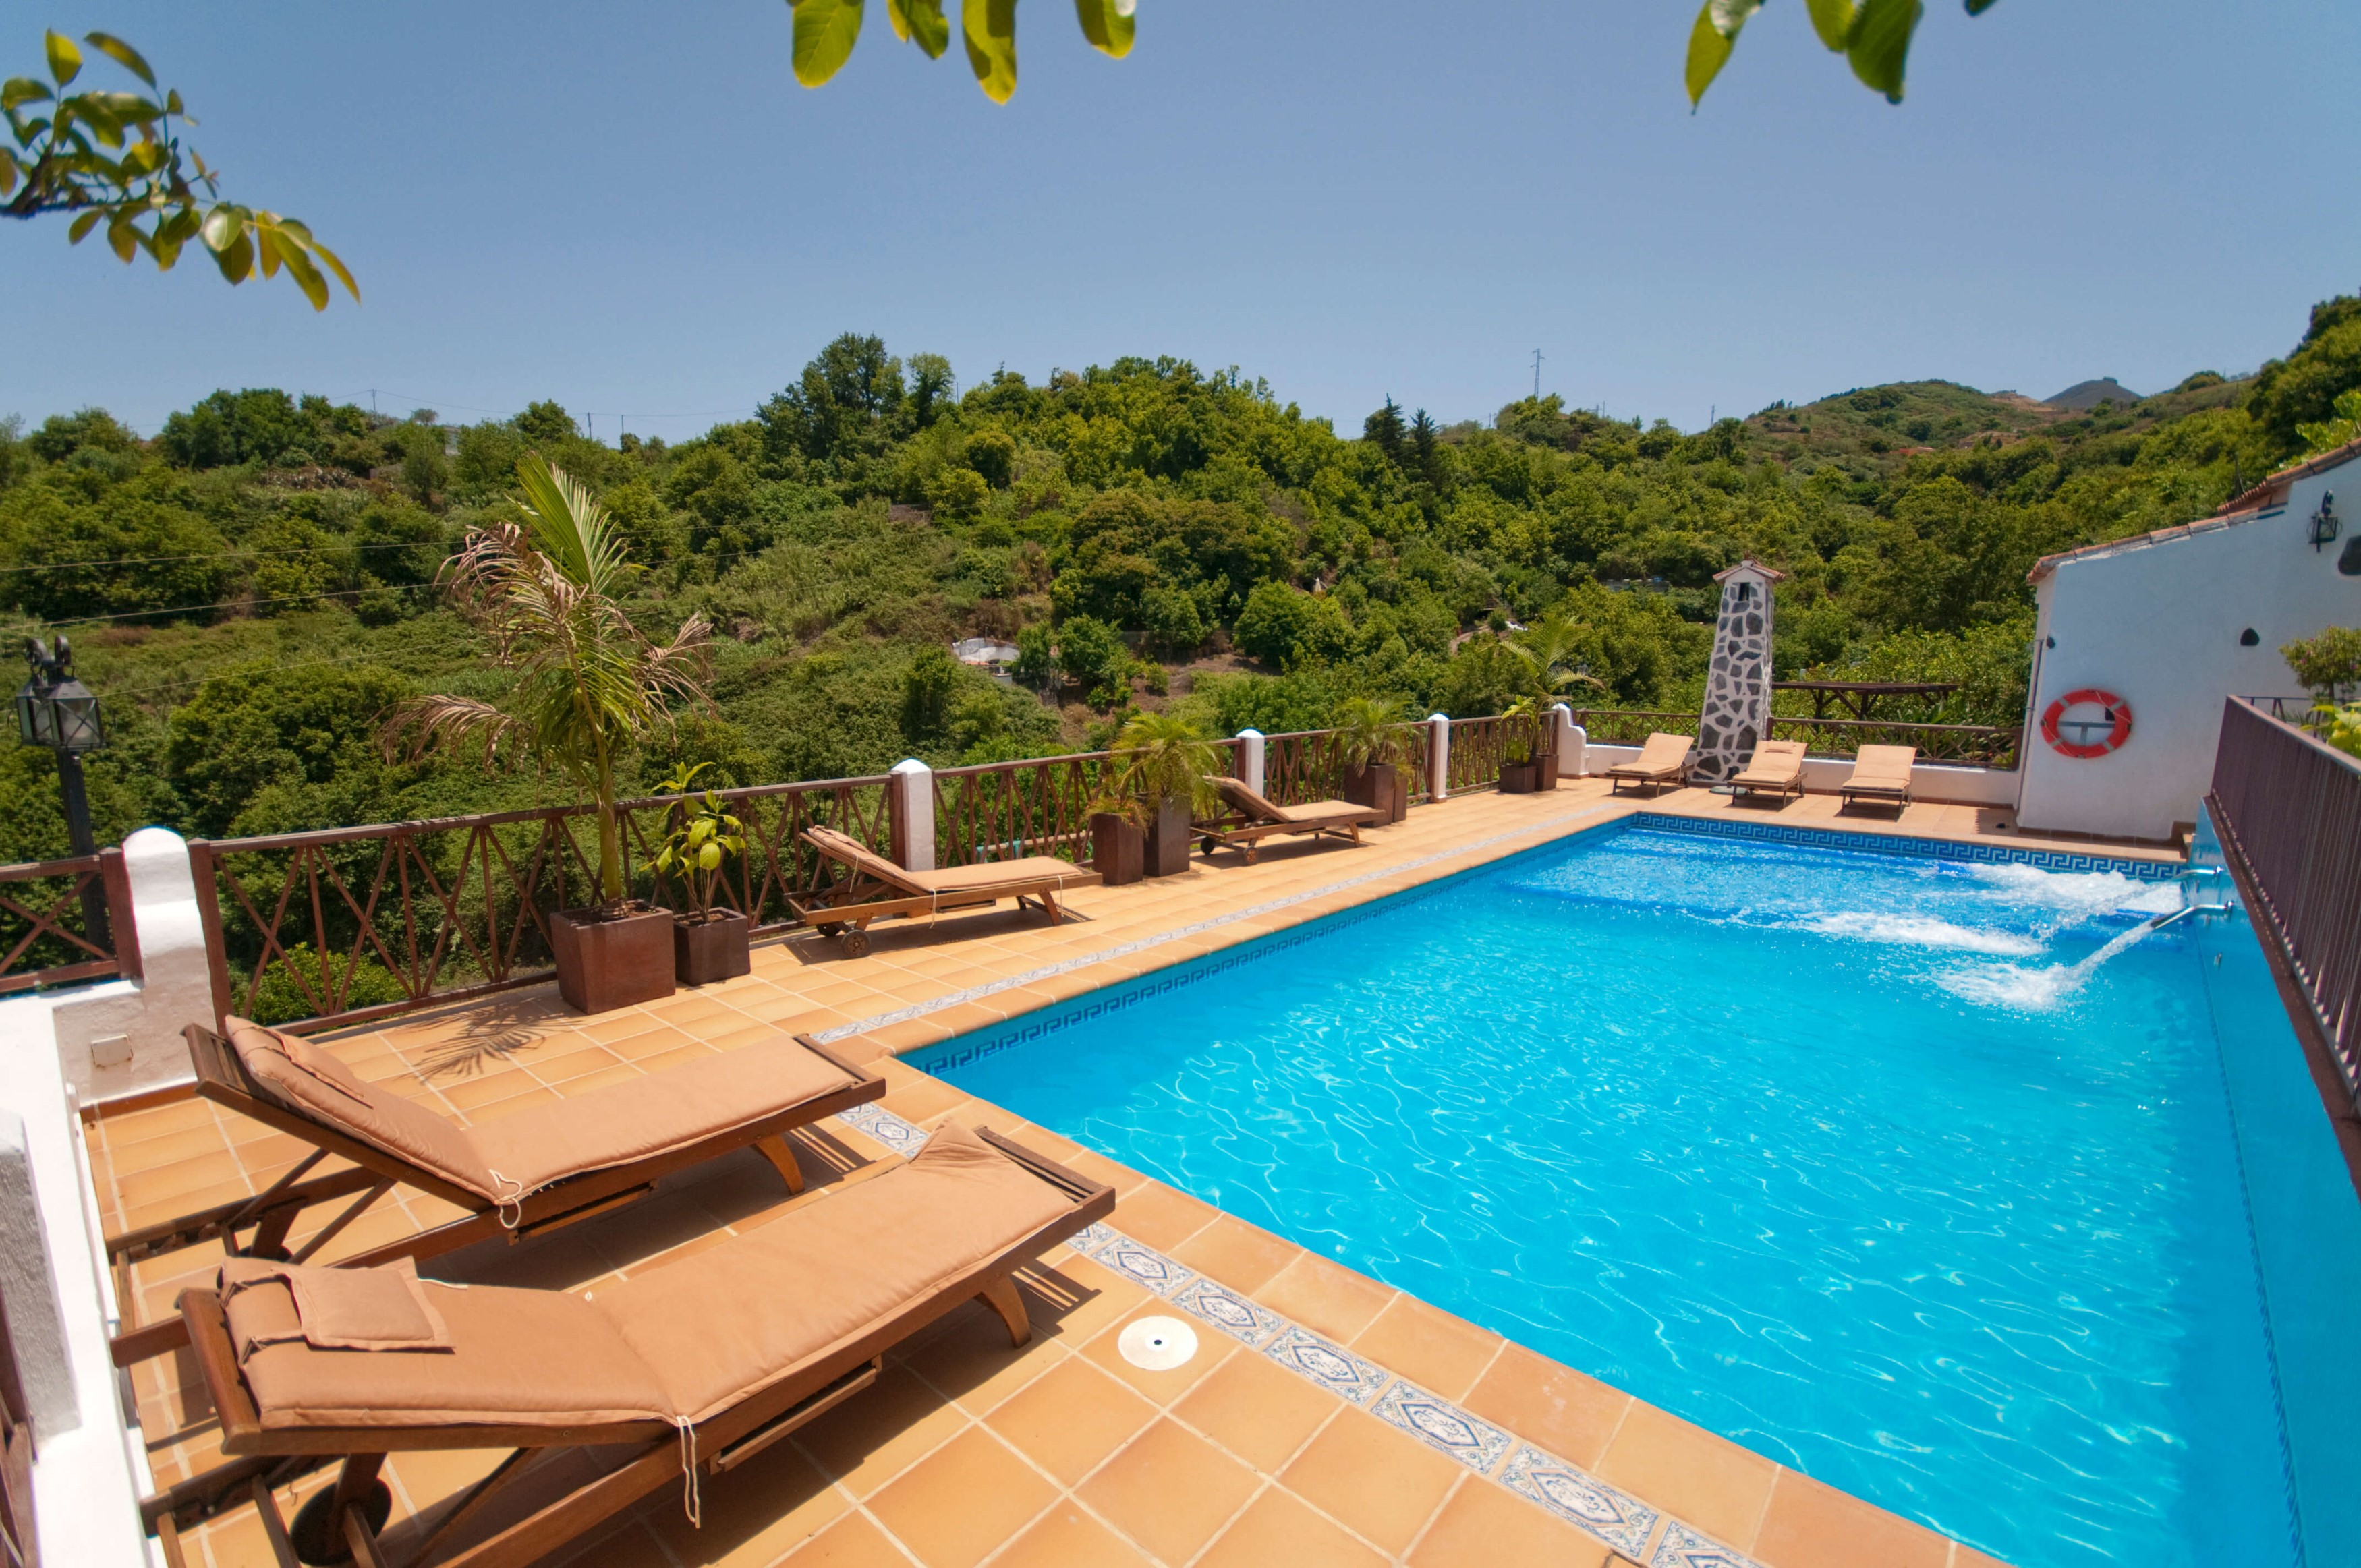 Maison de vacances House - 2 Bedrooms with Pool and WiFi - 106781 (2742990), San Fernando, Grande Canarie, Iles Canaries, Espagne, image 21